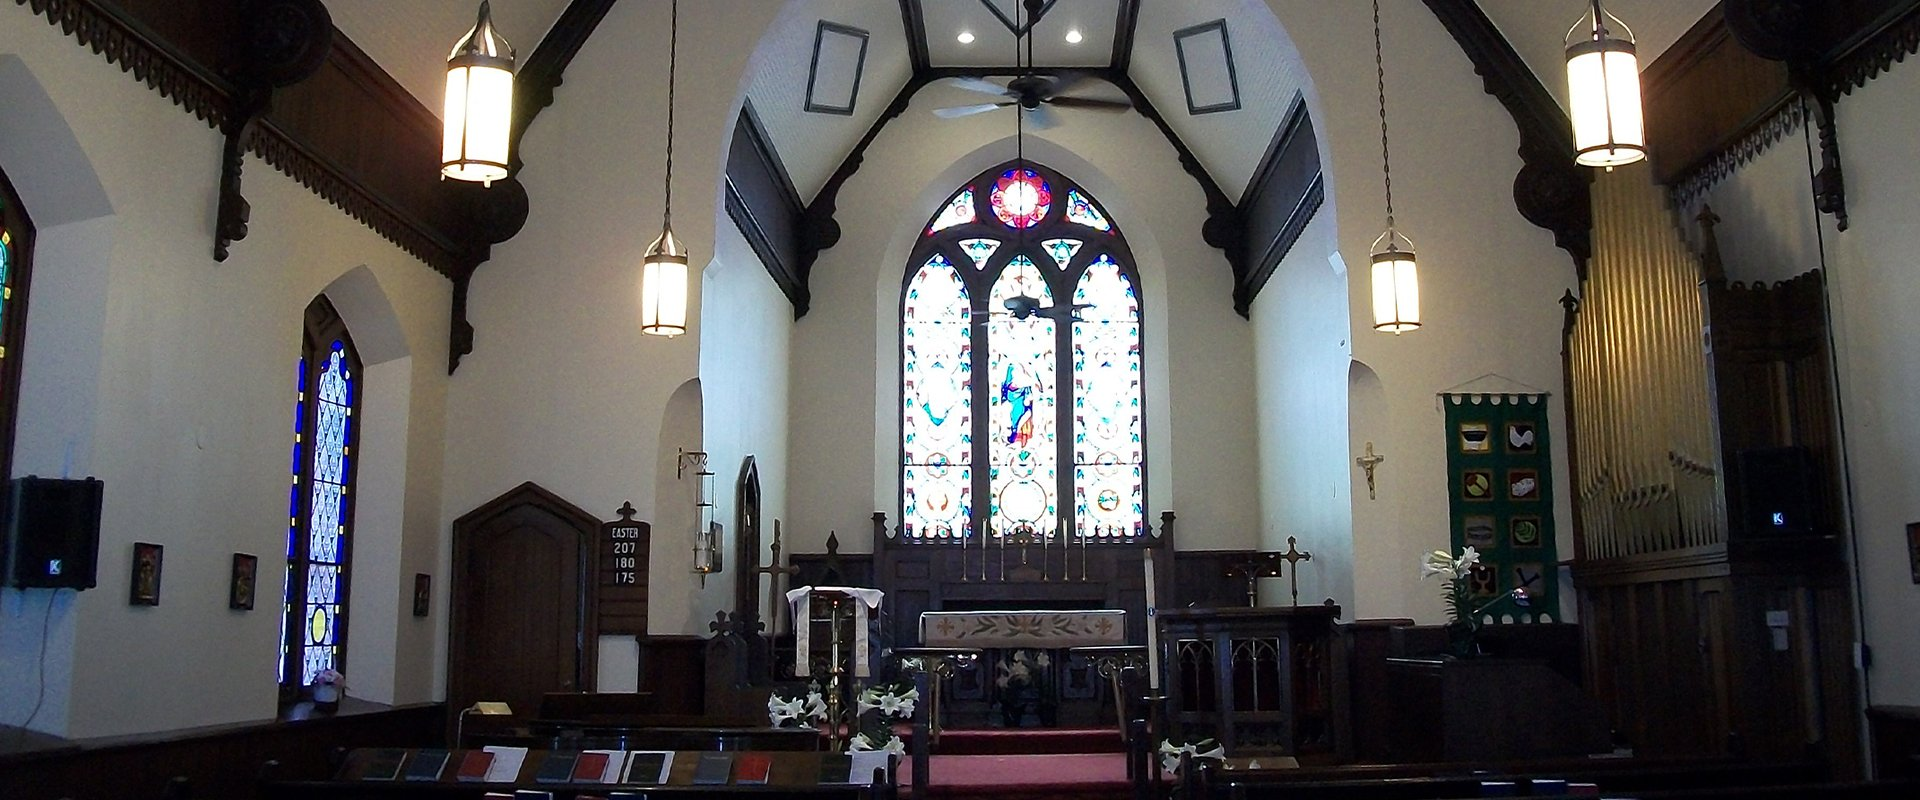 Holy Cross Church Interior